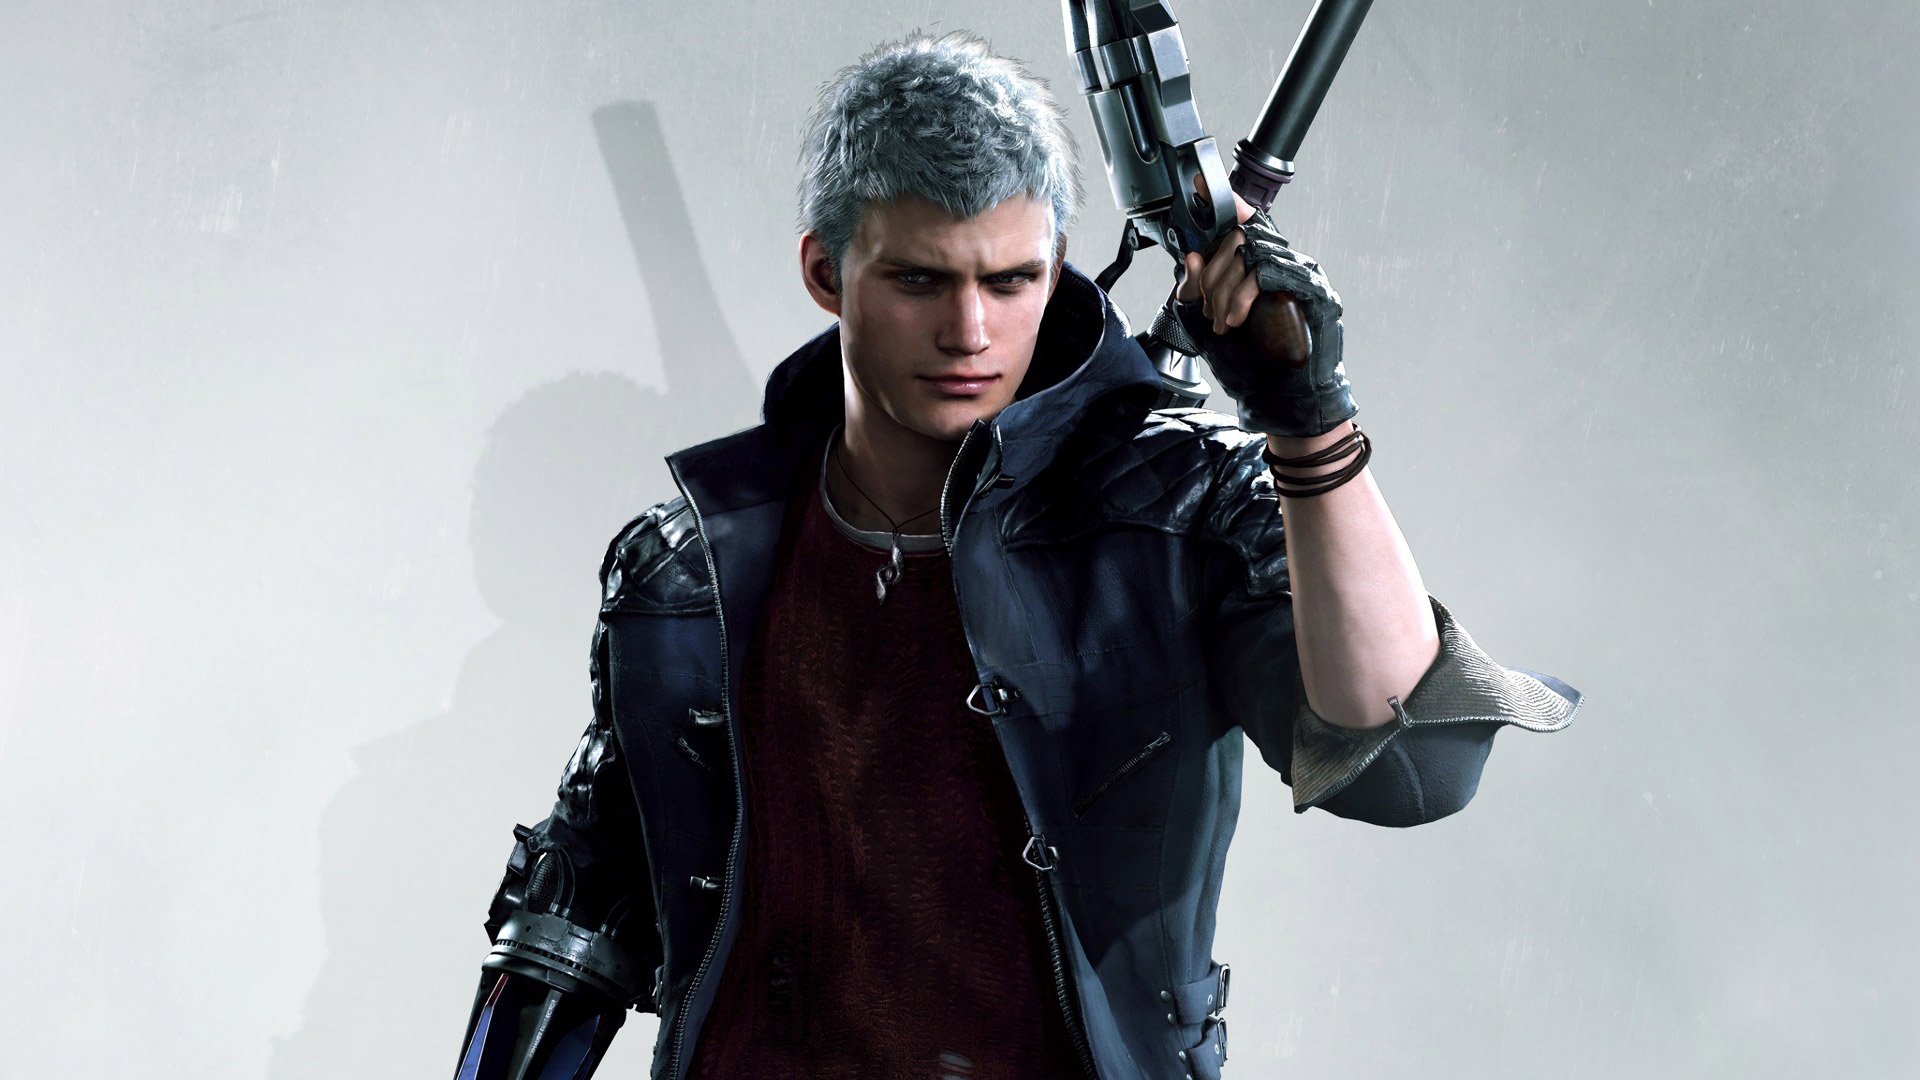 Devil May Cry 5 Wallpaper in 1920x1080